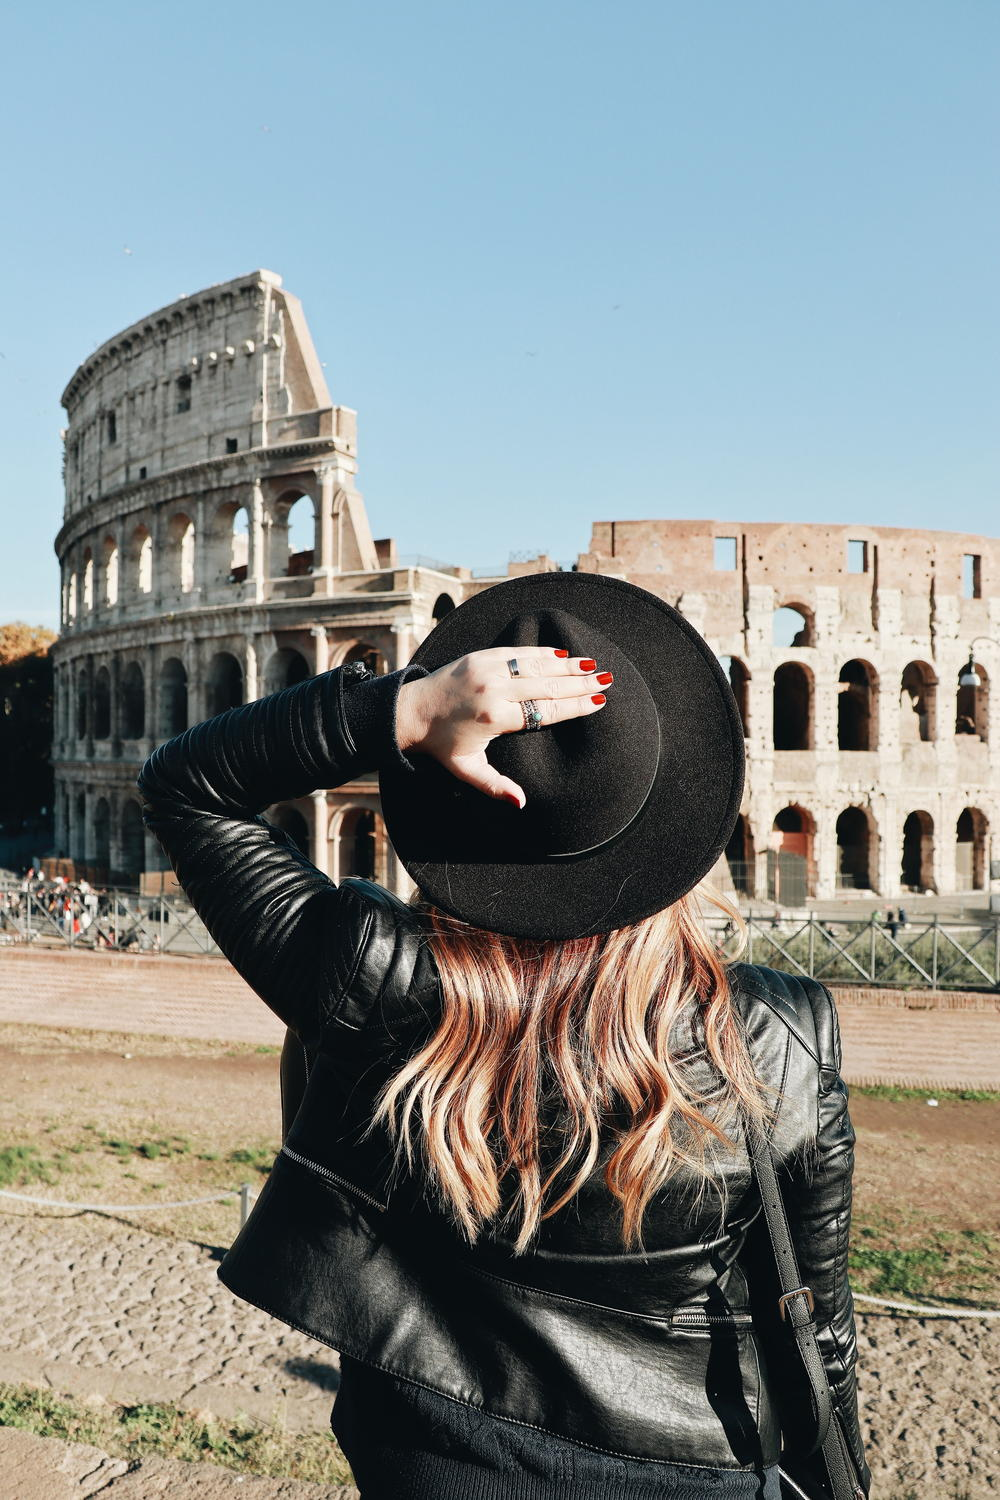 Visiting the Colosseum (Coliseum) in Rome.